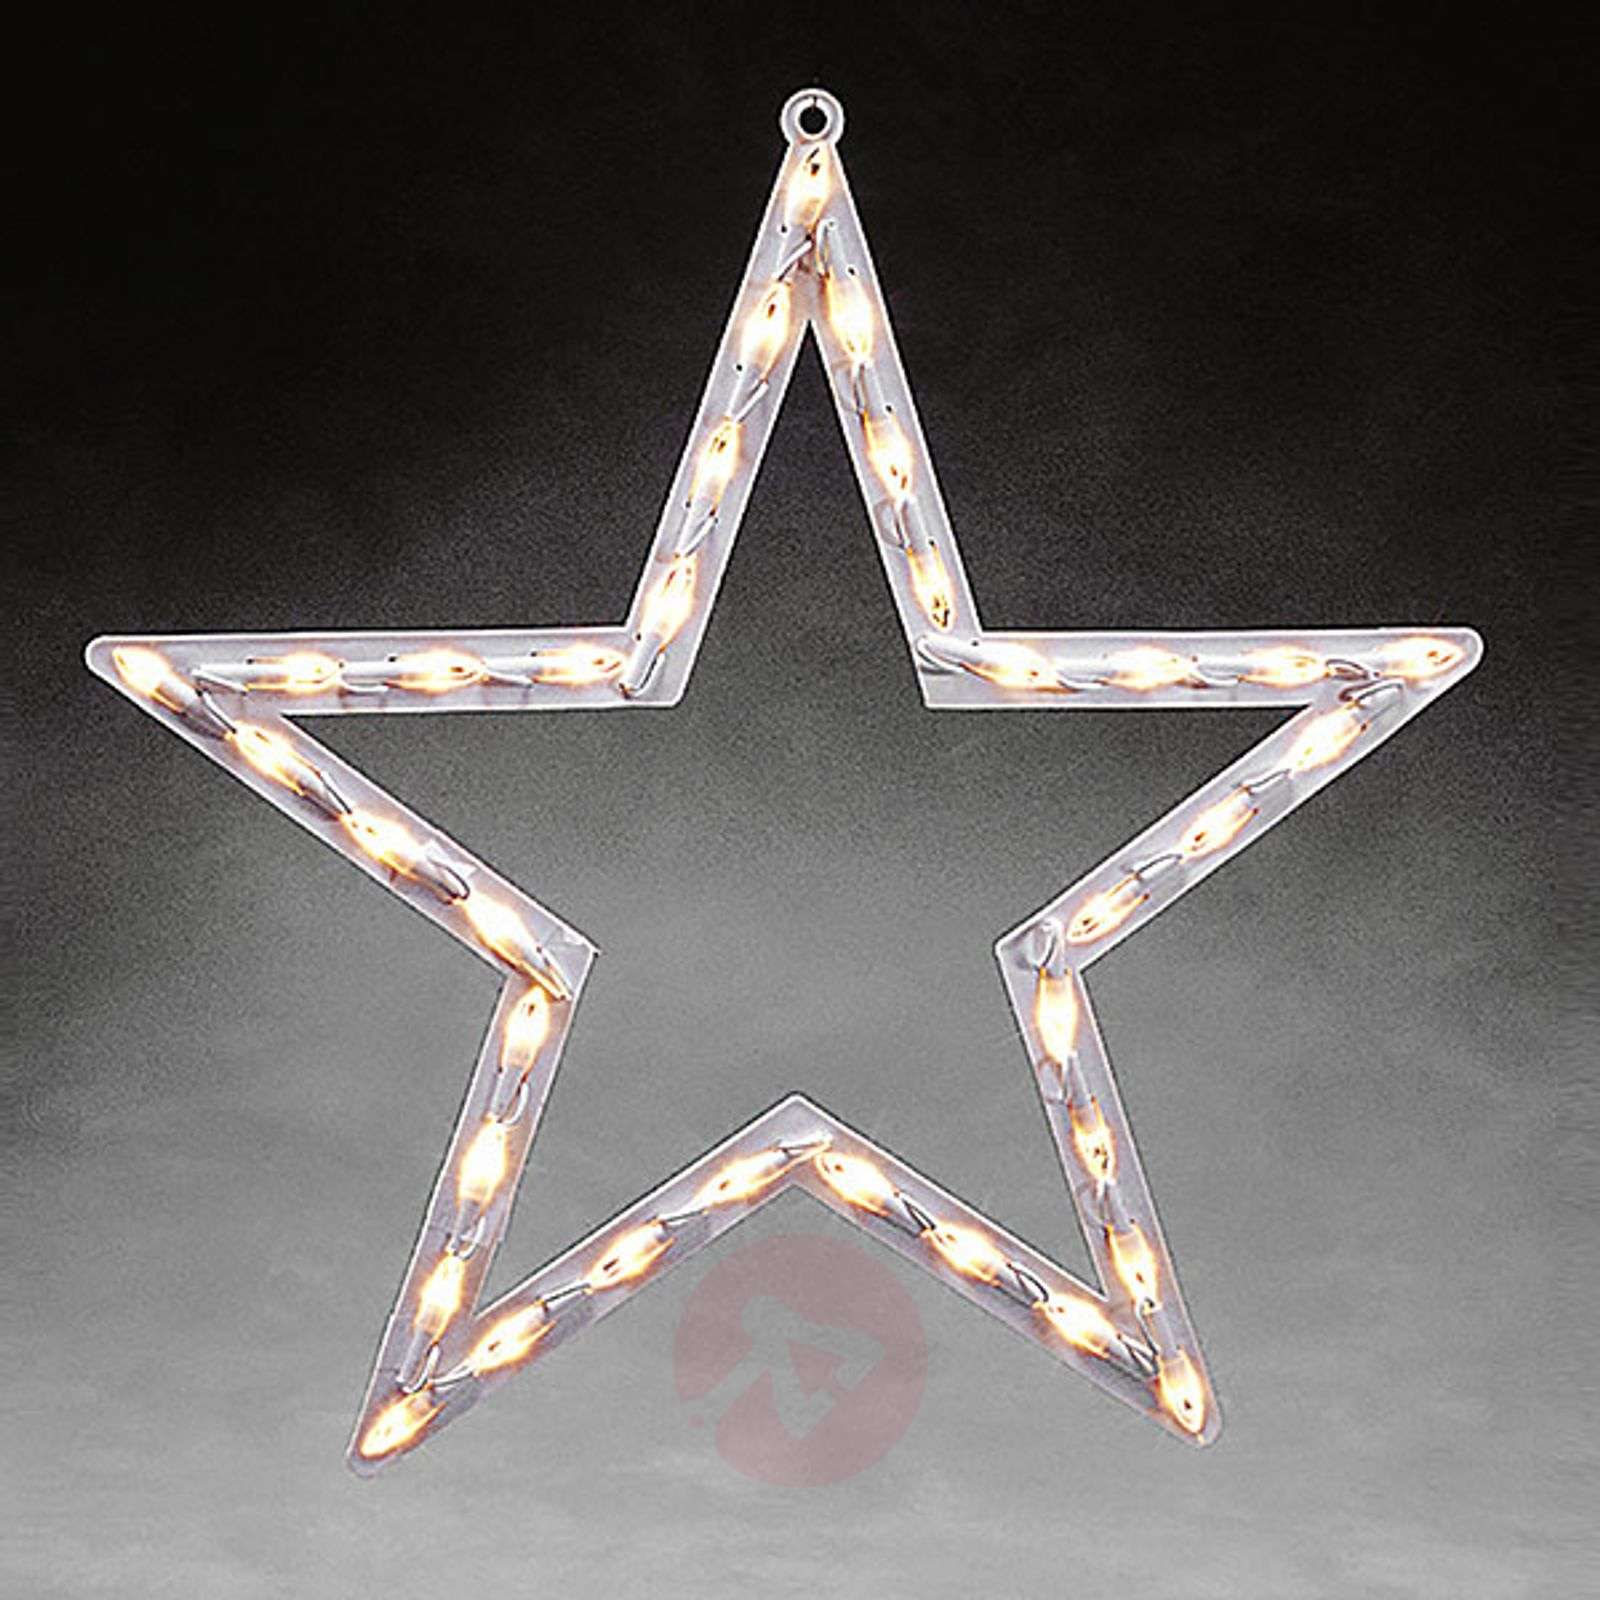 Star window silhouette LED for indoors warm white-5524841-01